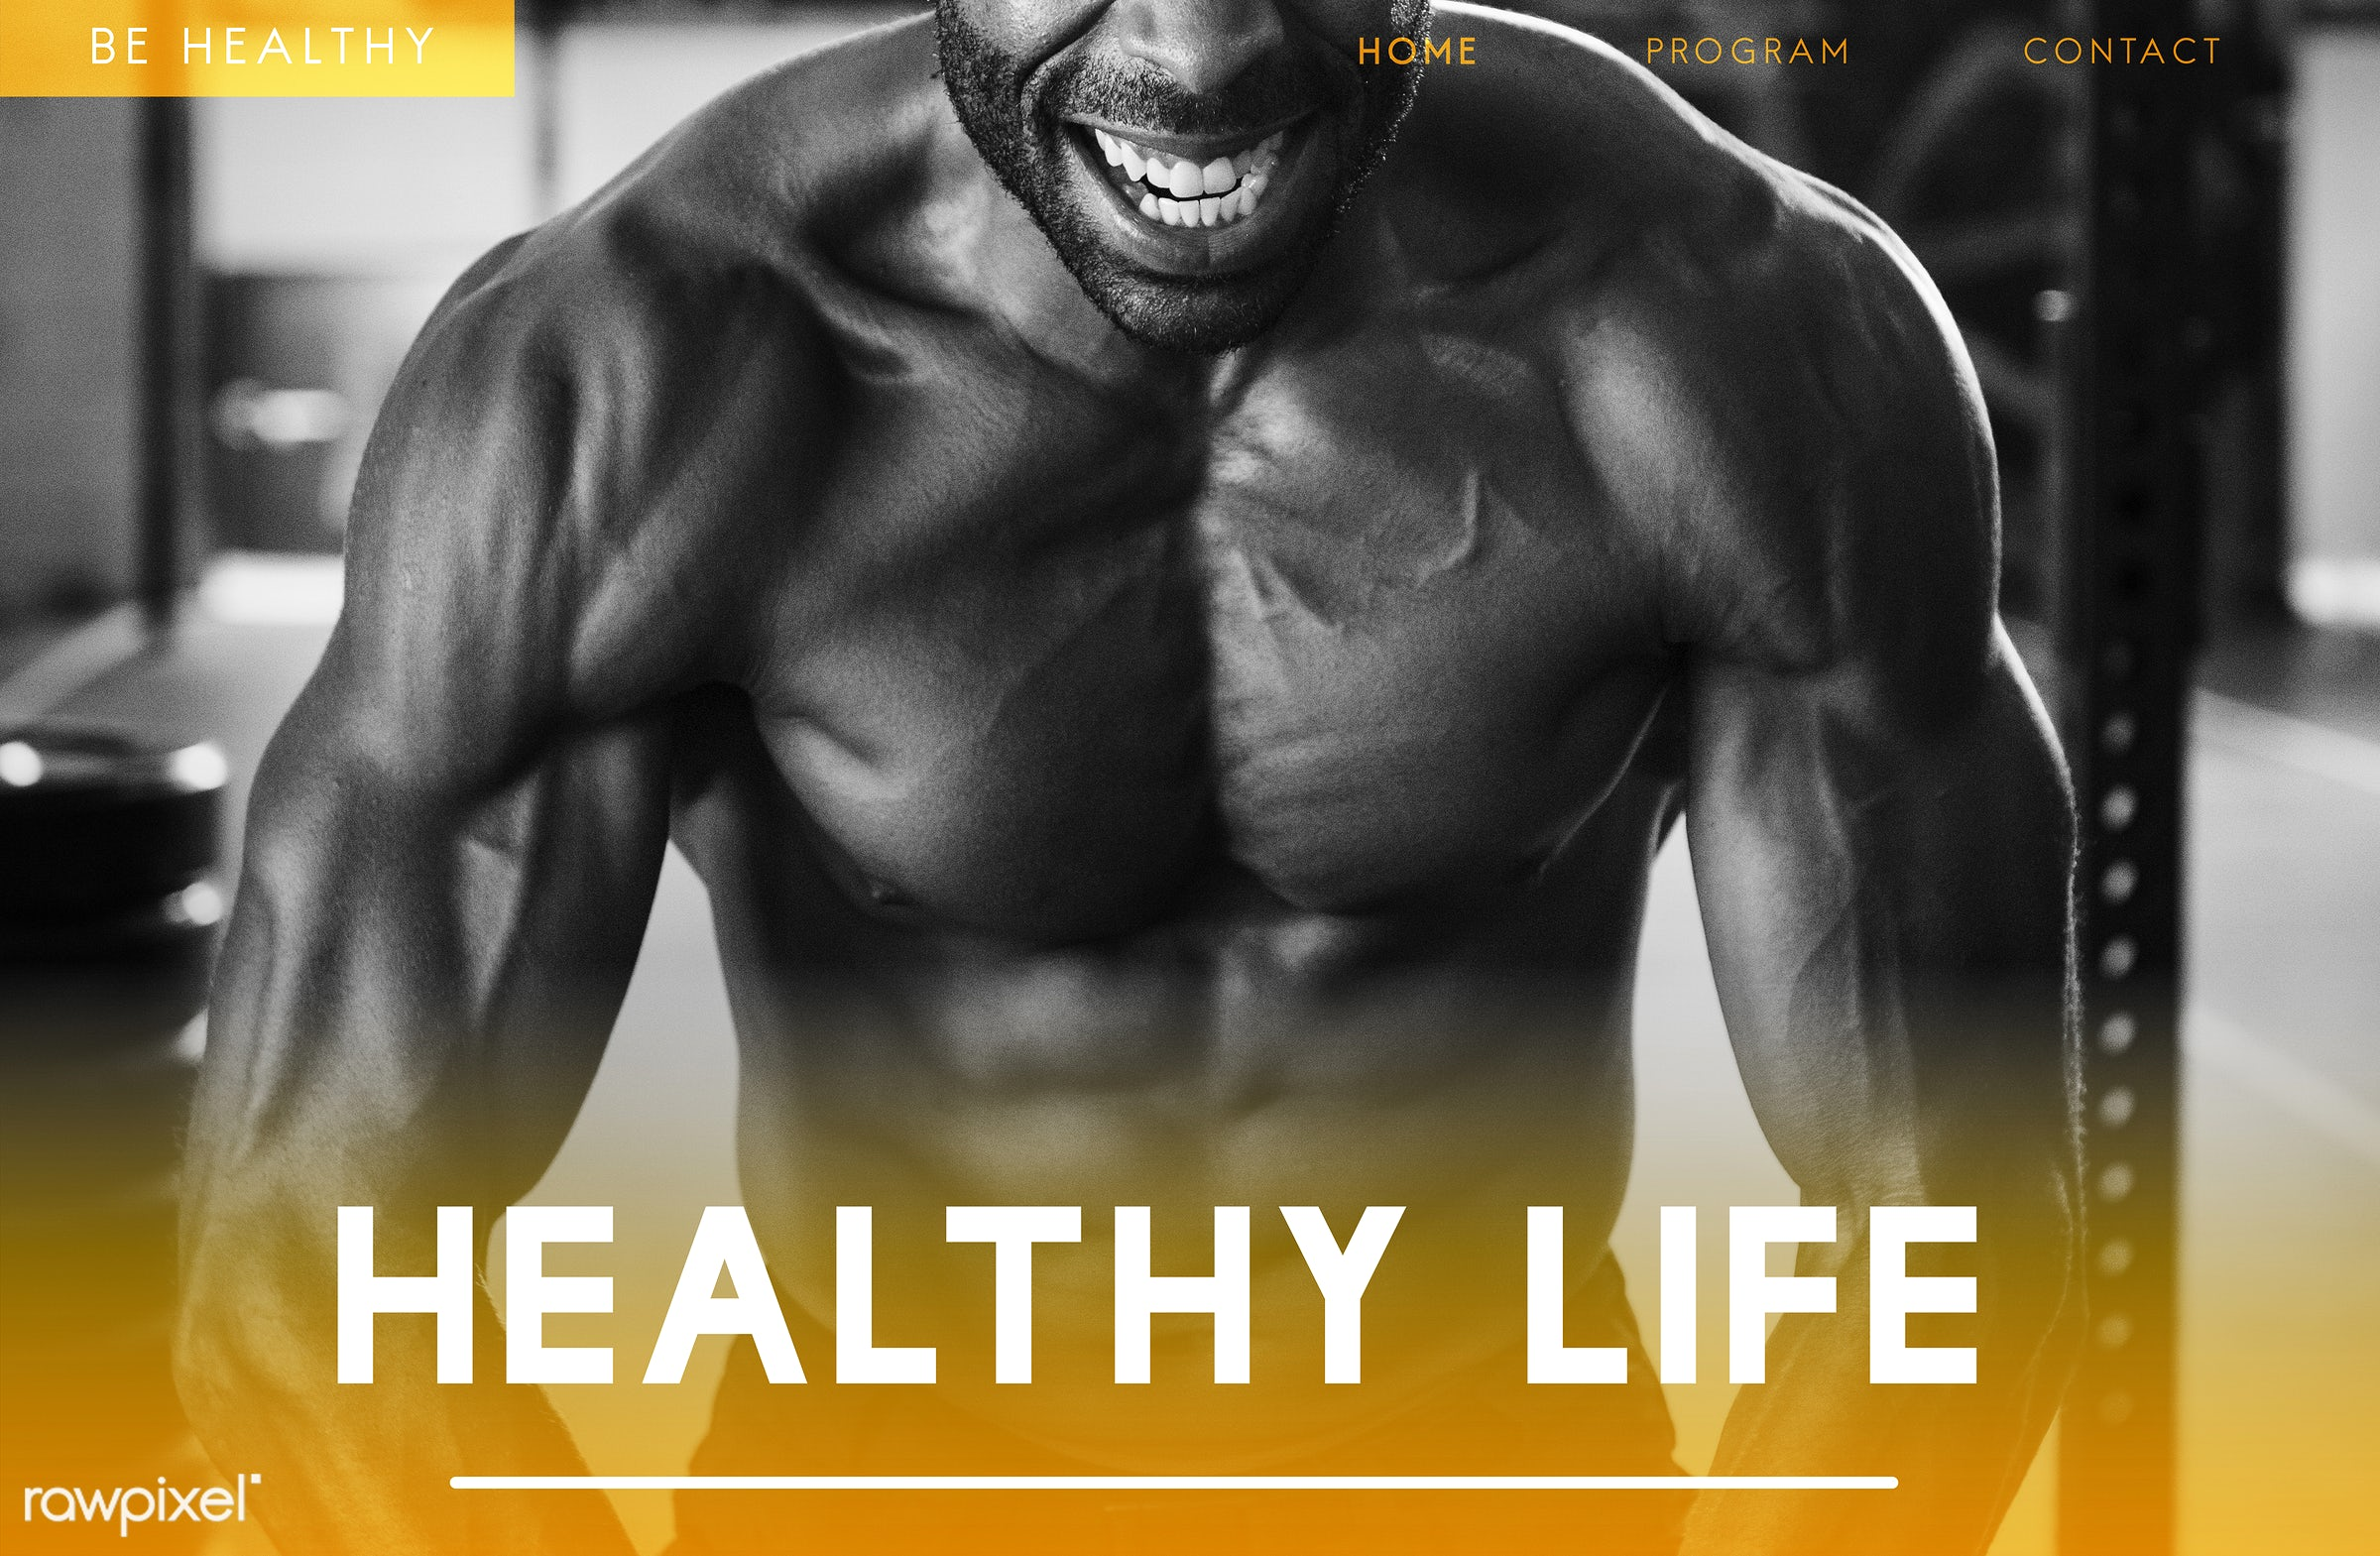 abs, active, adult, african descent, arms, athletic, balance, benefits, biceps, body, bodybuilder, care, exercise, fit,...